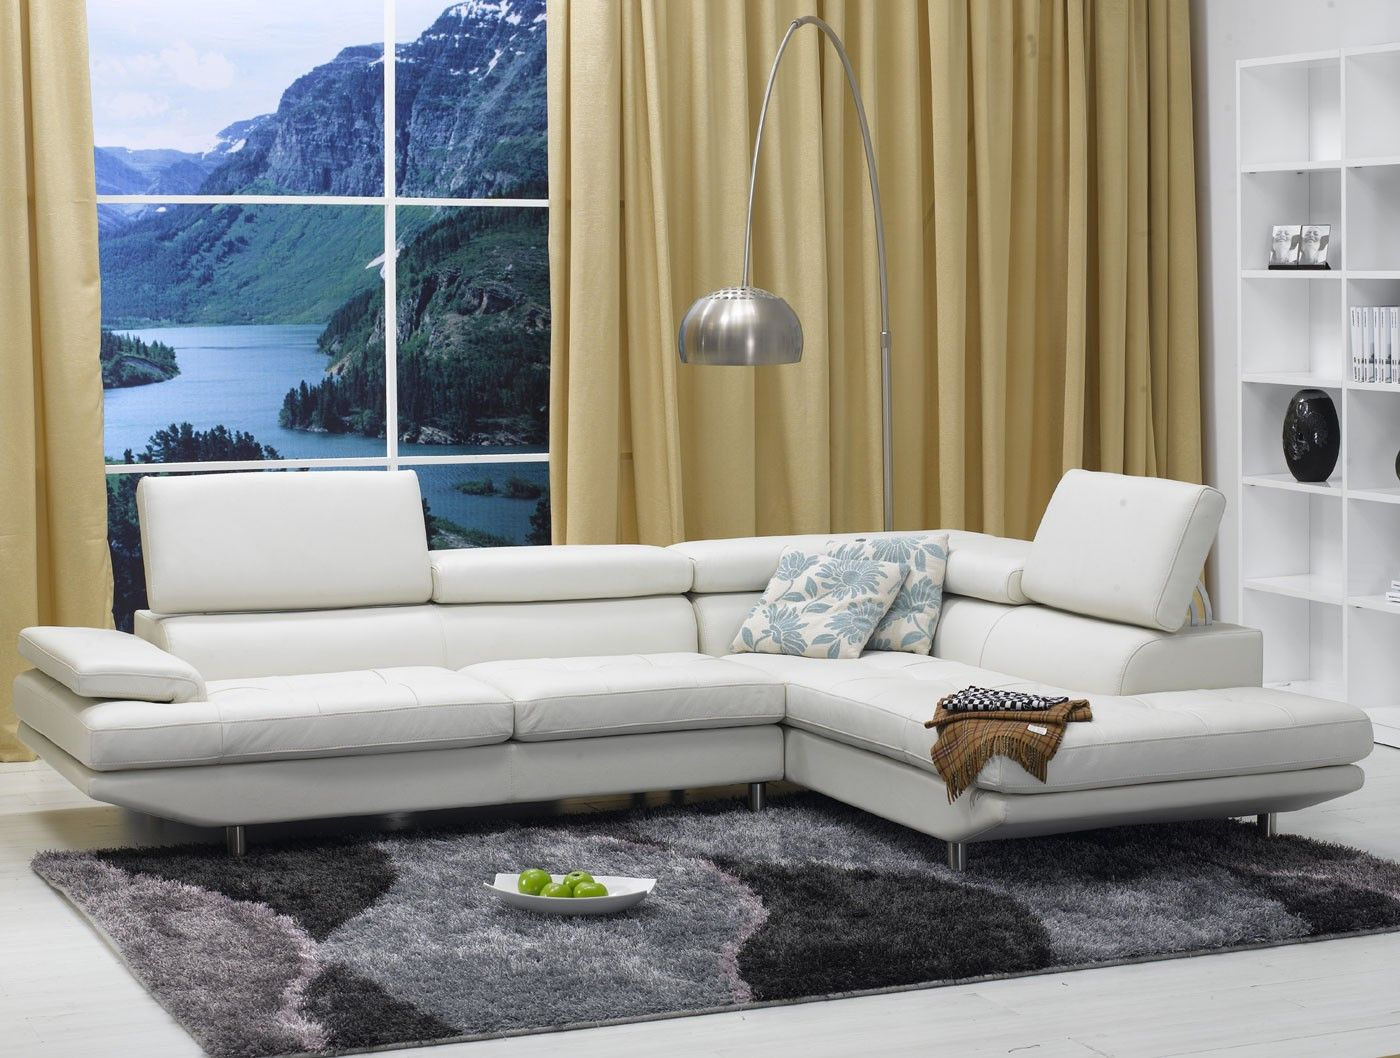 this is the couch in our living room  photos  pinterest  - this is the couch in our living room white leather sectionalsleathersectional sofasbest furnituremodern